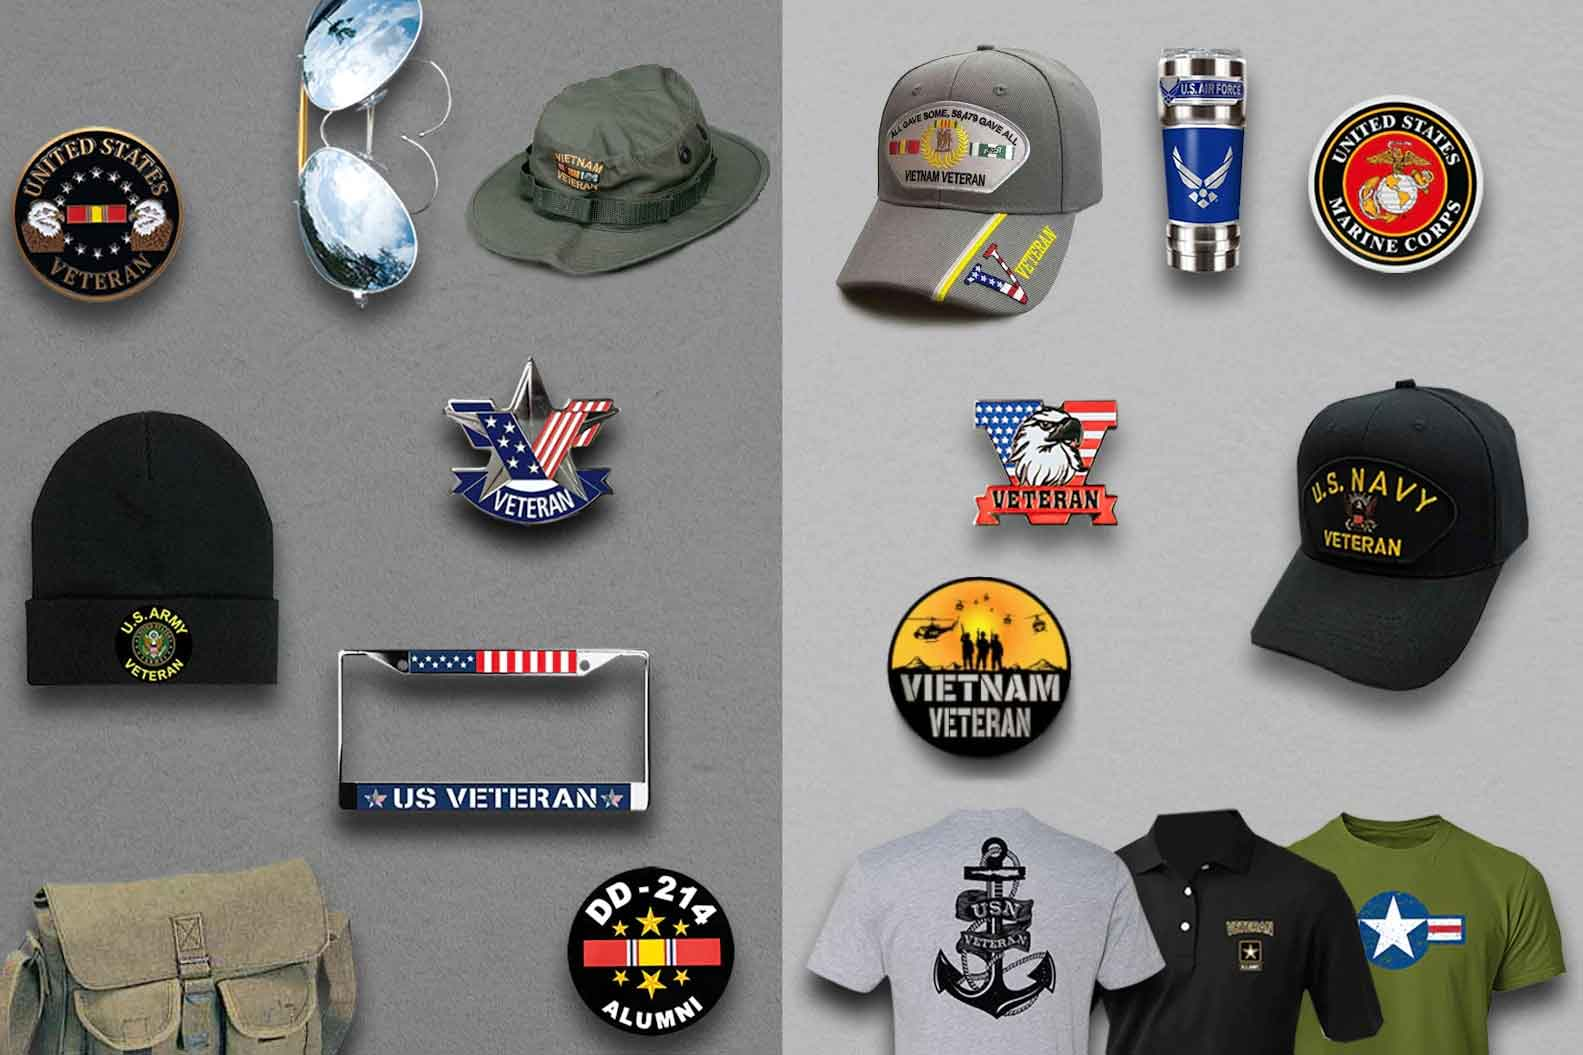 subscription box may include these military hats, coins, pins, t-shirts, mugs decals, lapel pins, sunglasses